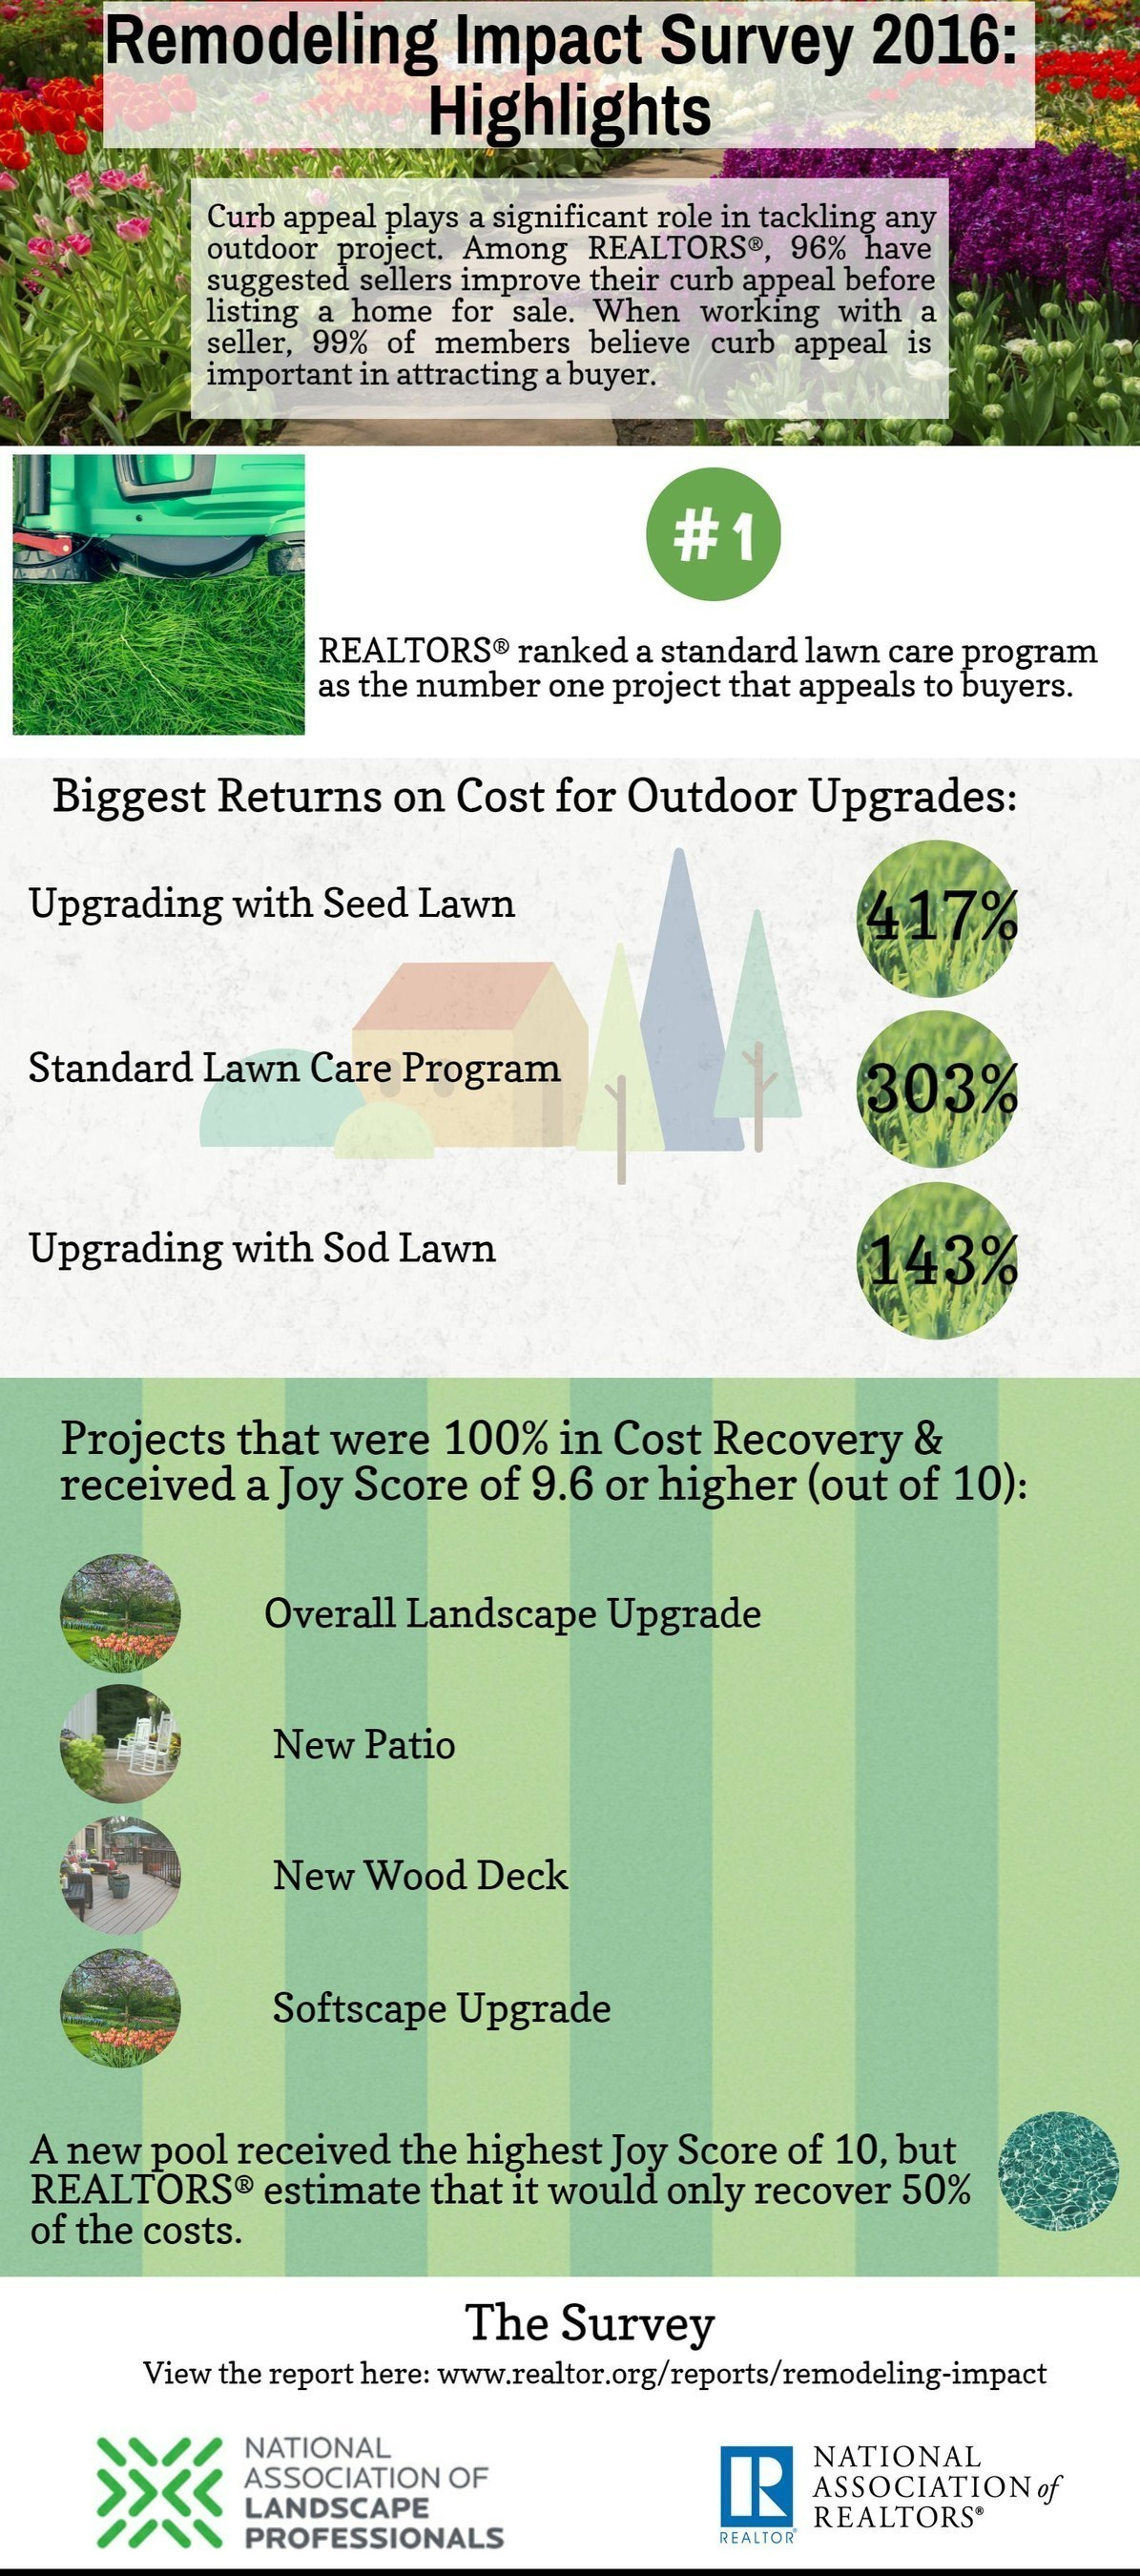 Outdoor Remodeling Projects See High Happiness and Financial Returns, Say Realtors'